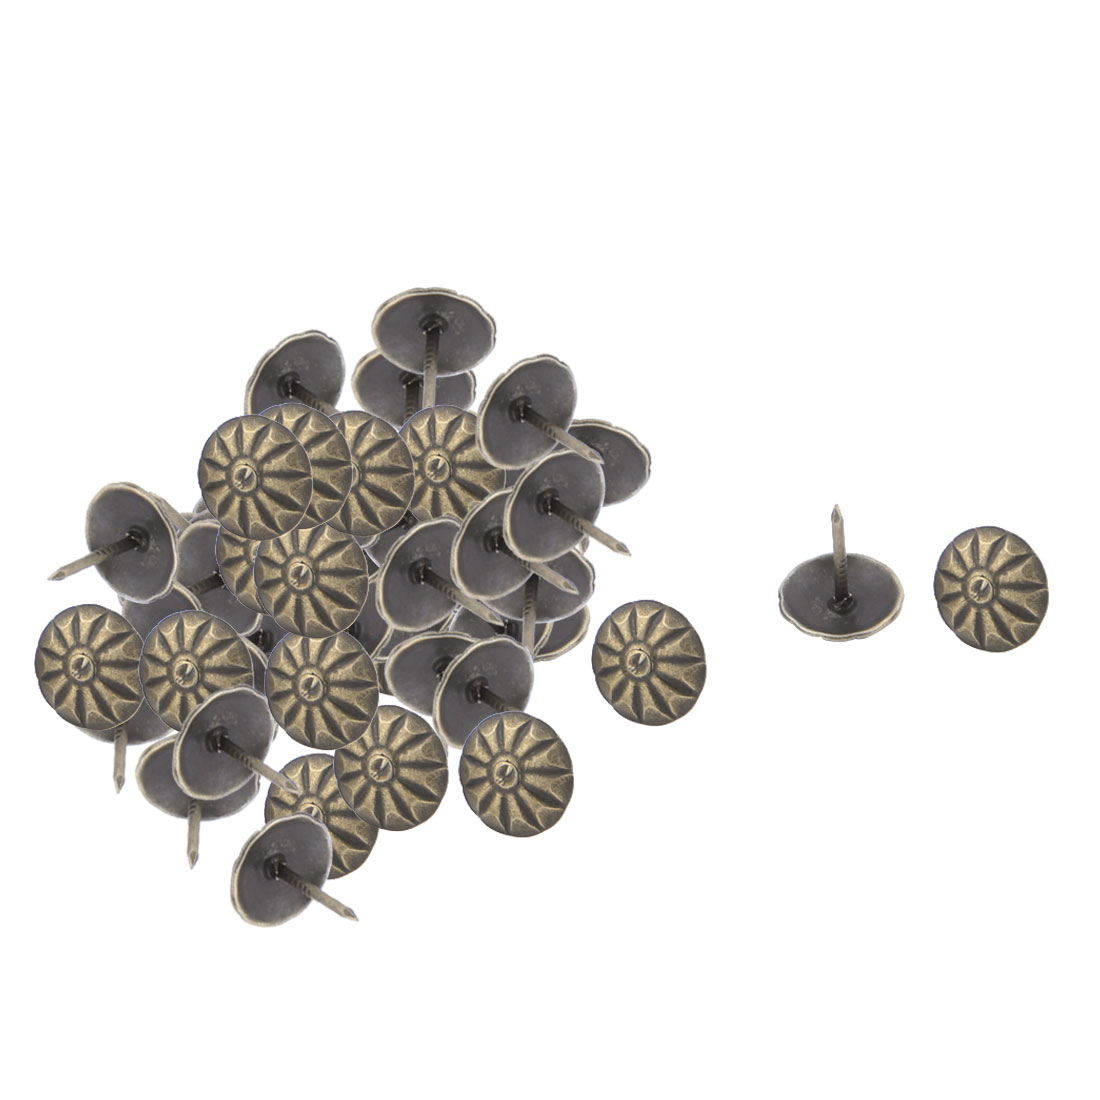 13mmx11mm School Metal Vintage Flower Print Thumb Tack Push Pin Bronze Tone 60pcs